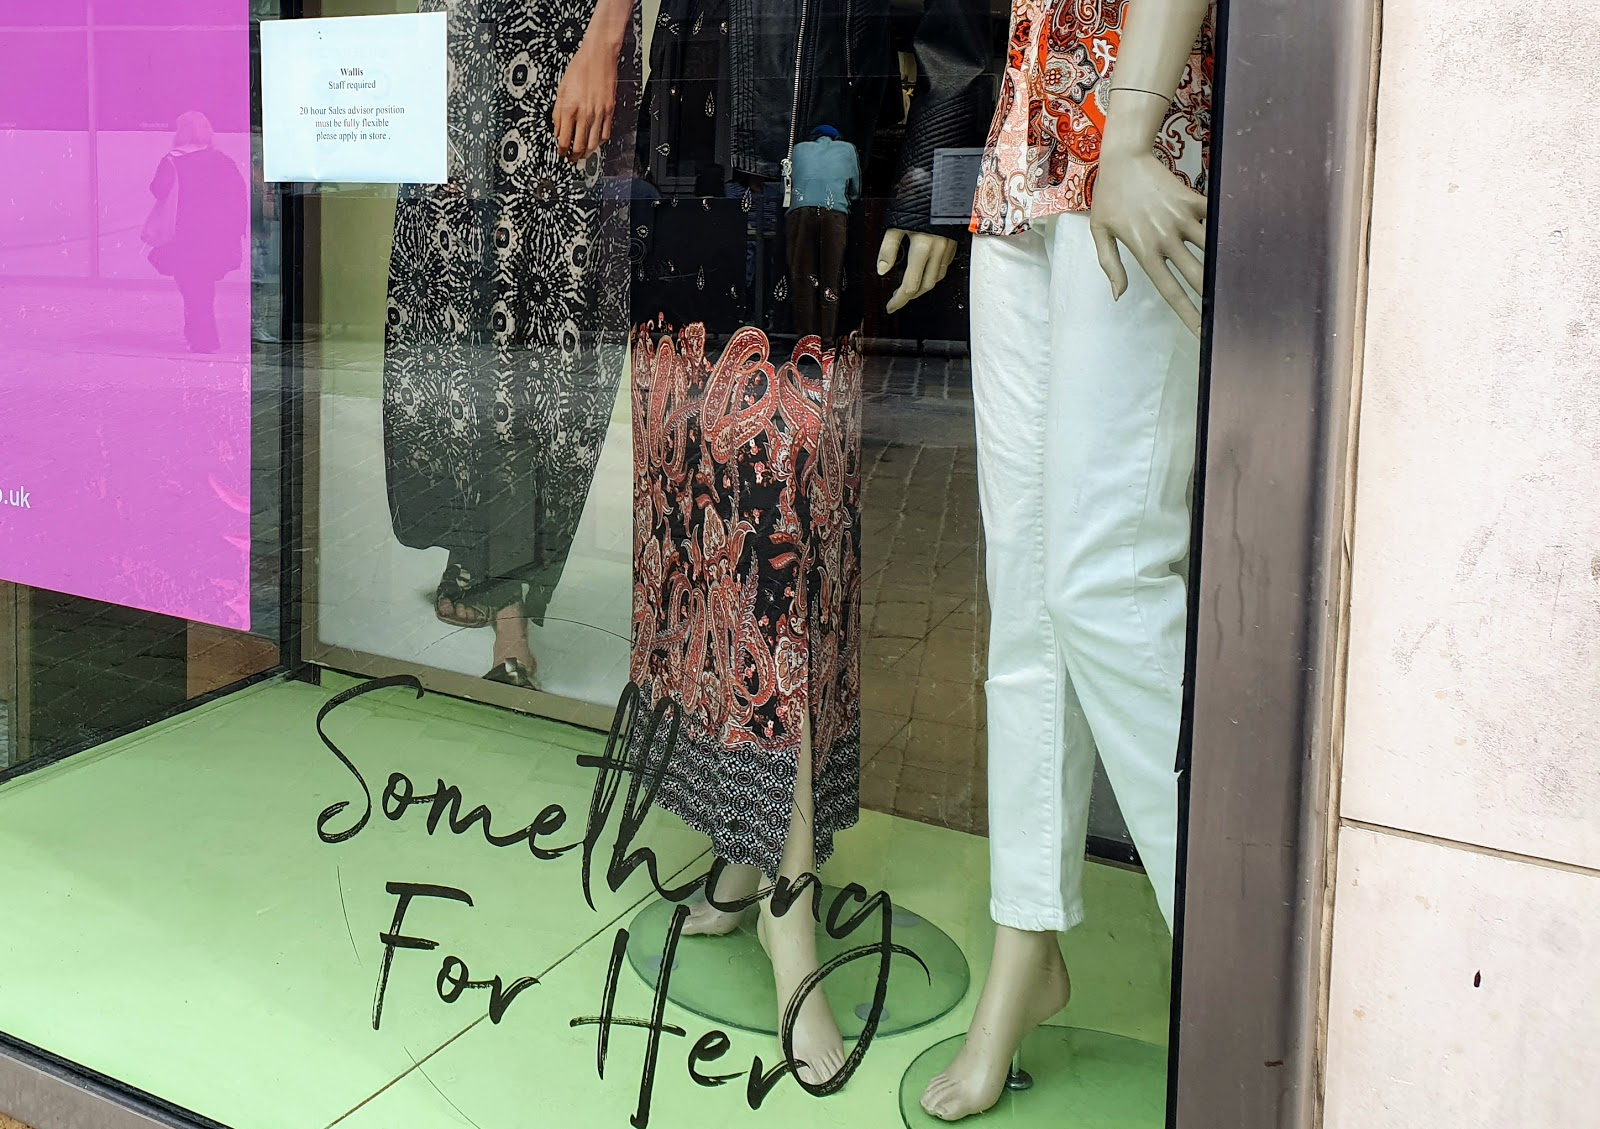 shop window with clothed mannequins and titled something-for-her.